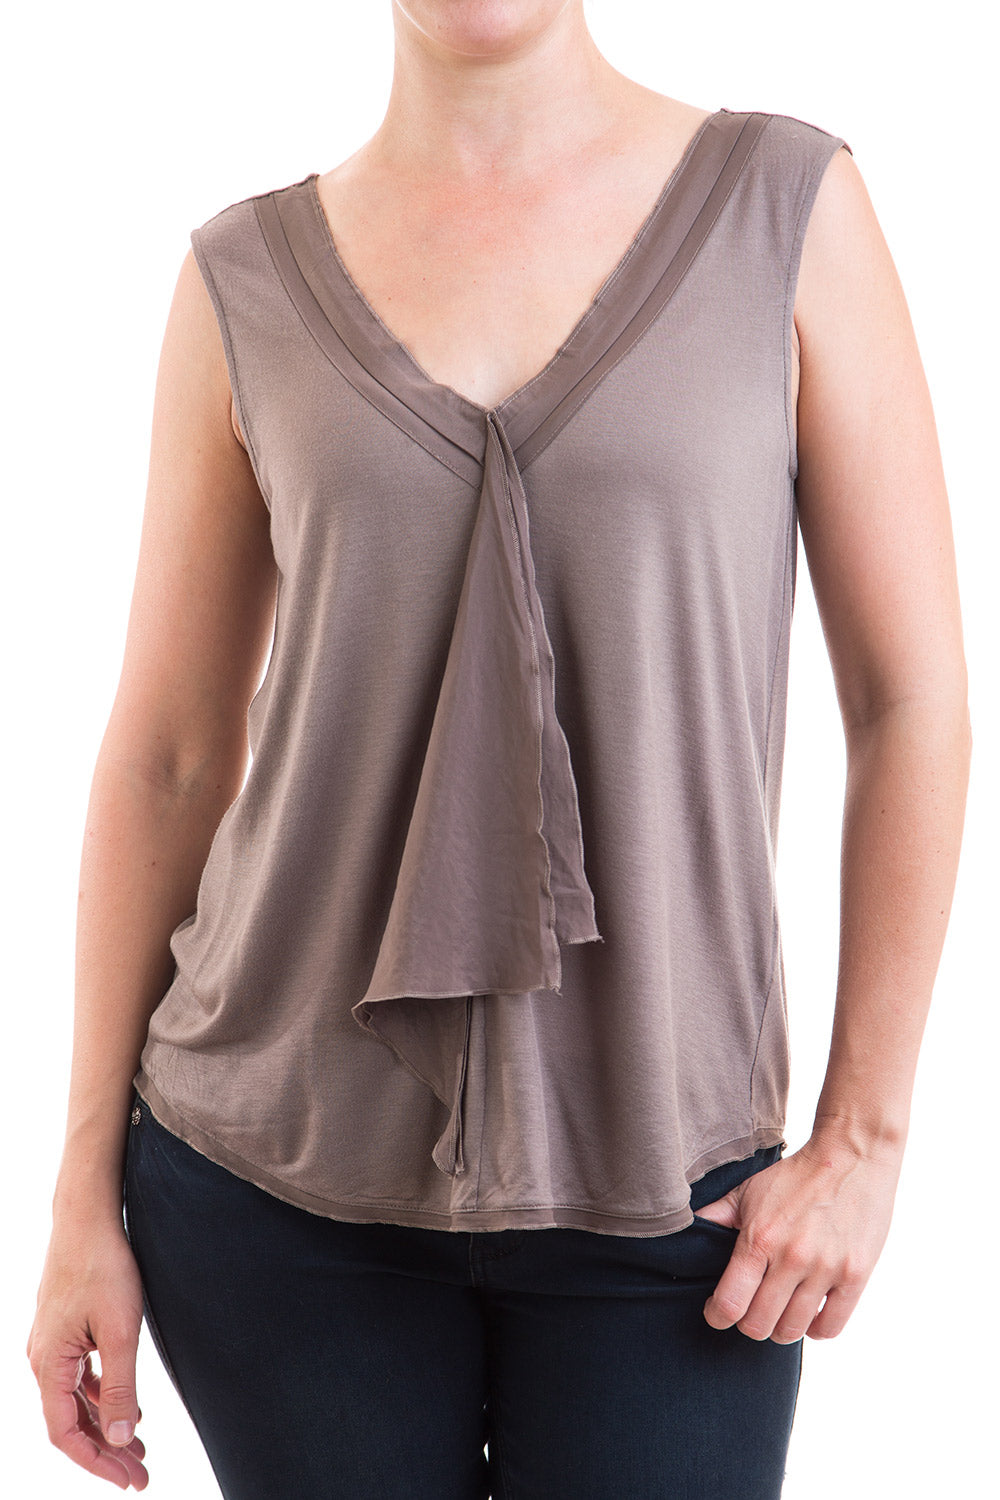 Type 2 Fluid Flowing Top in Taupe